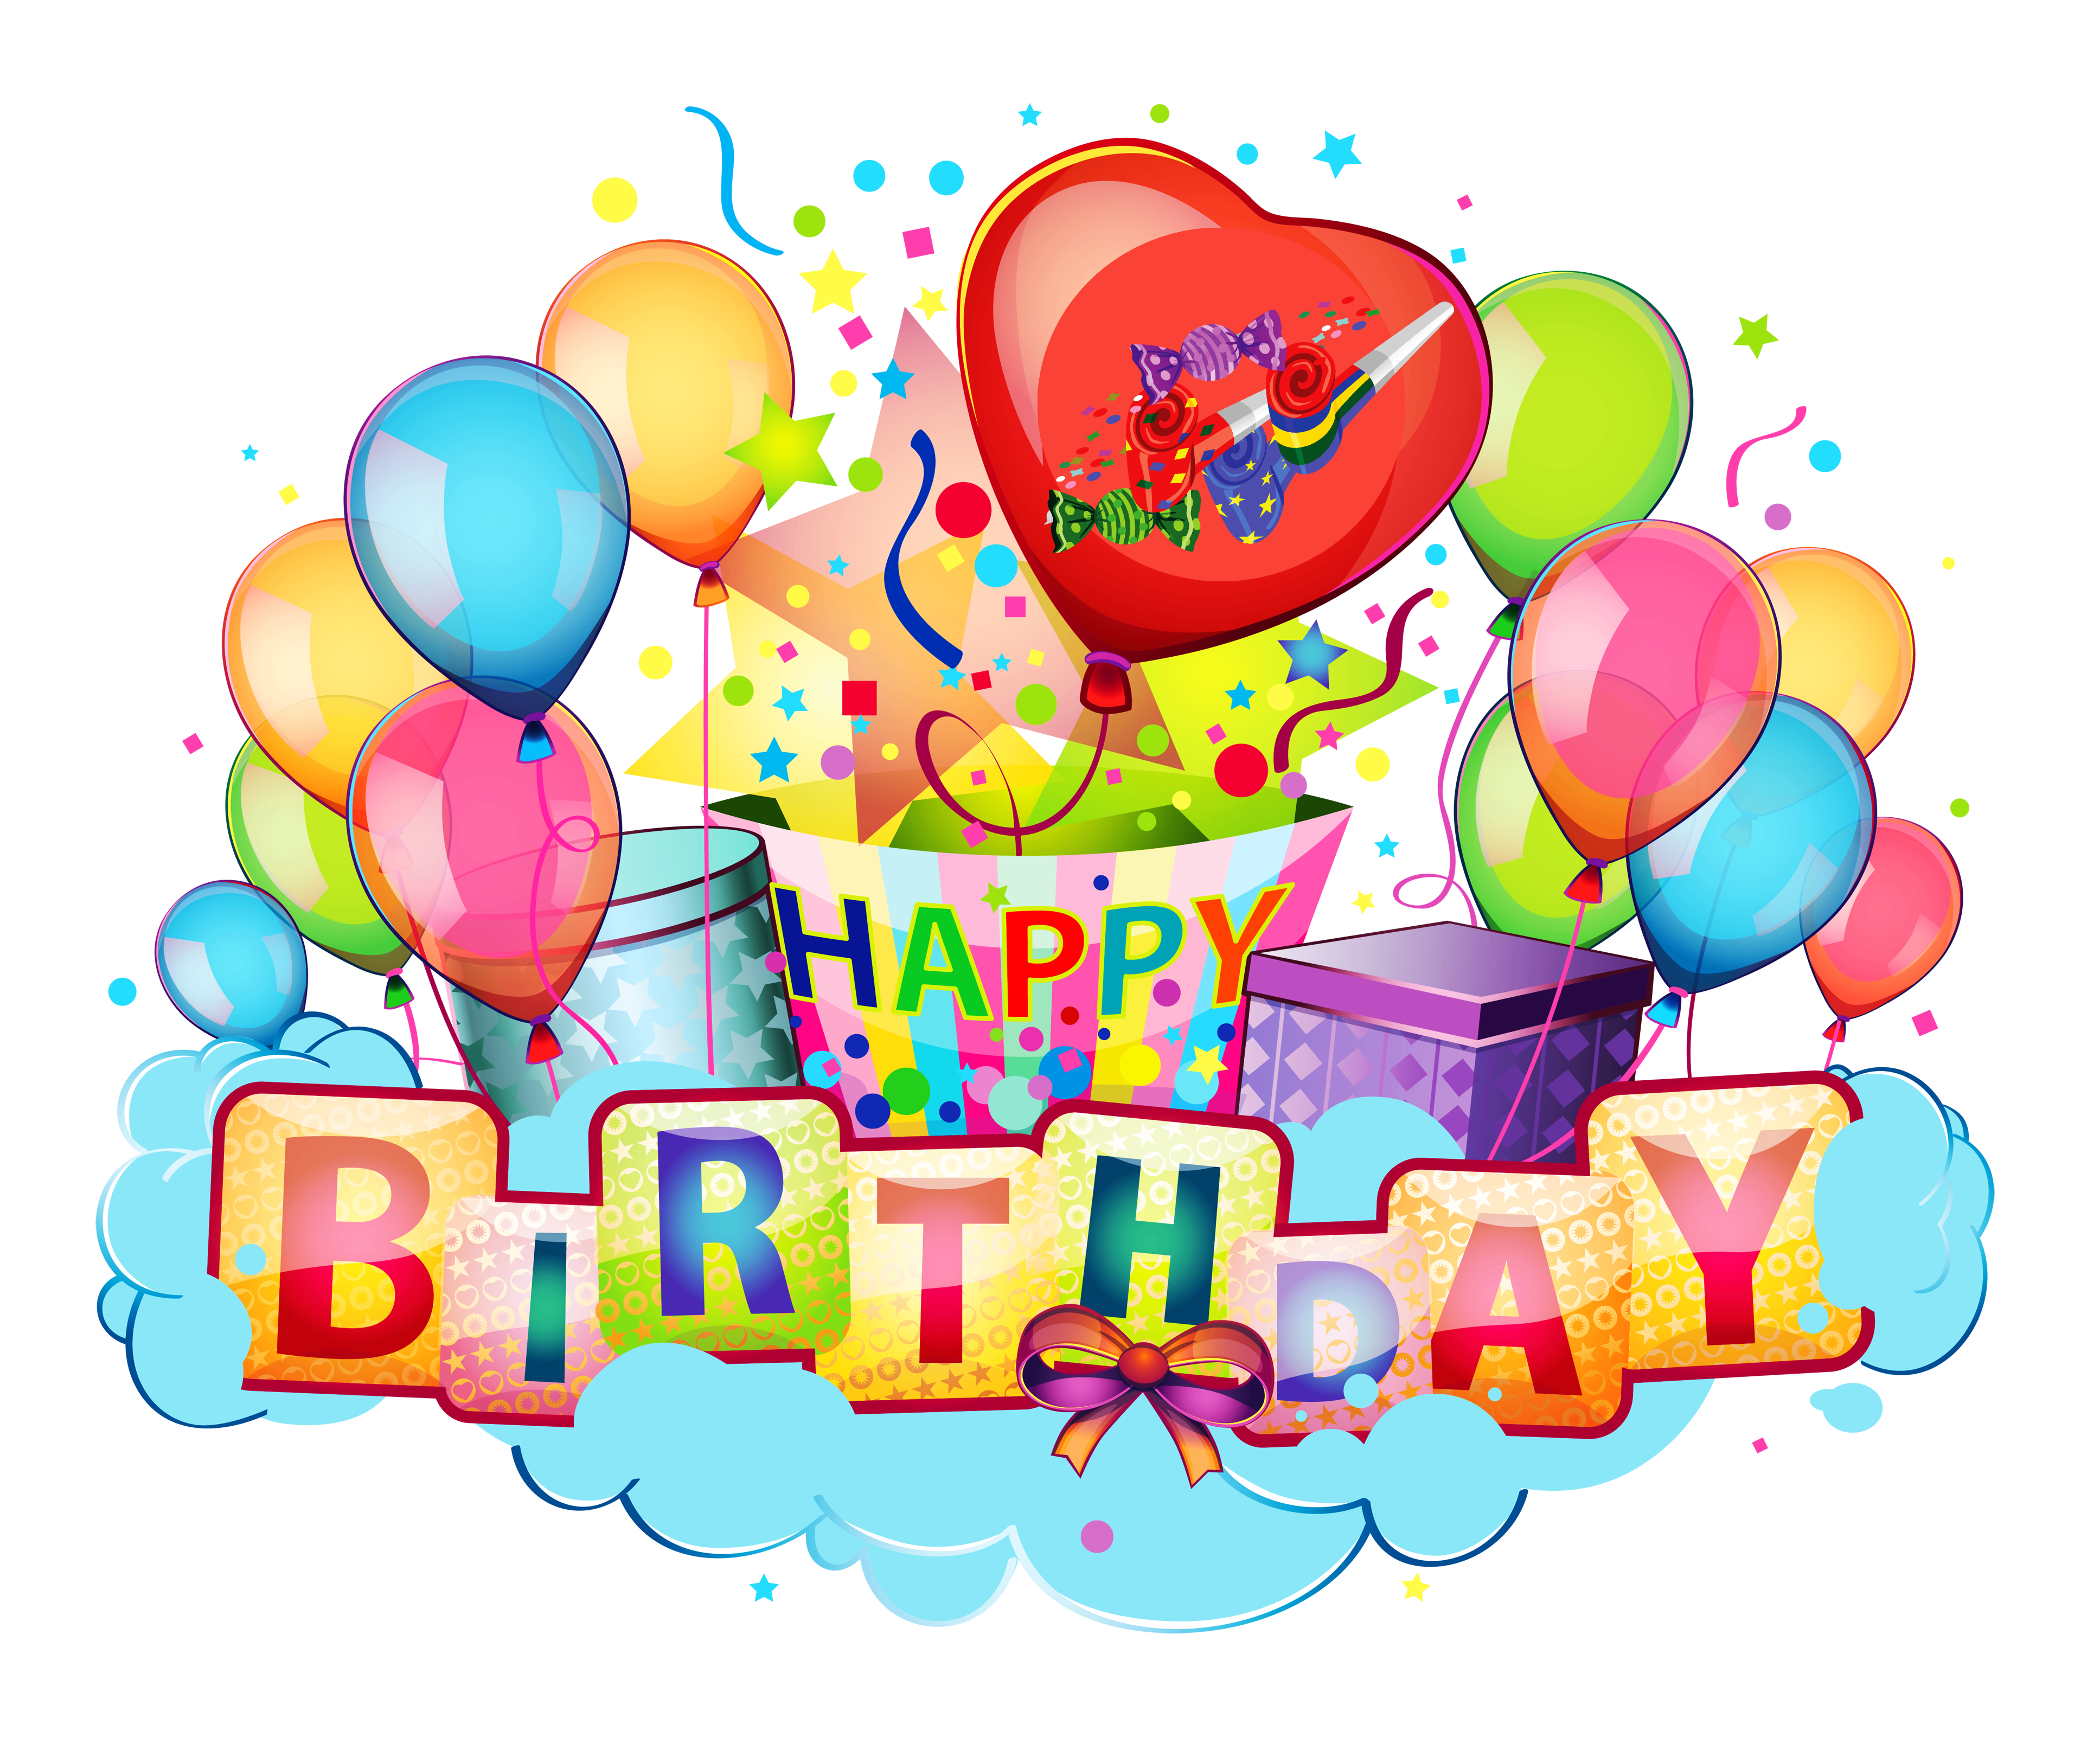 Balloons gift happy birthday wish images free download